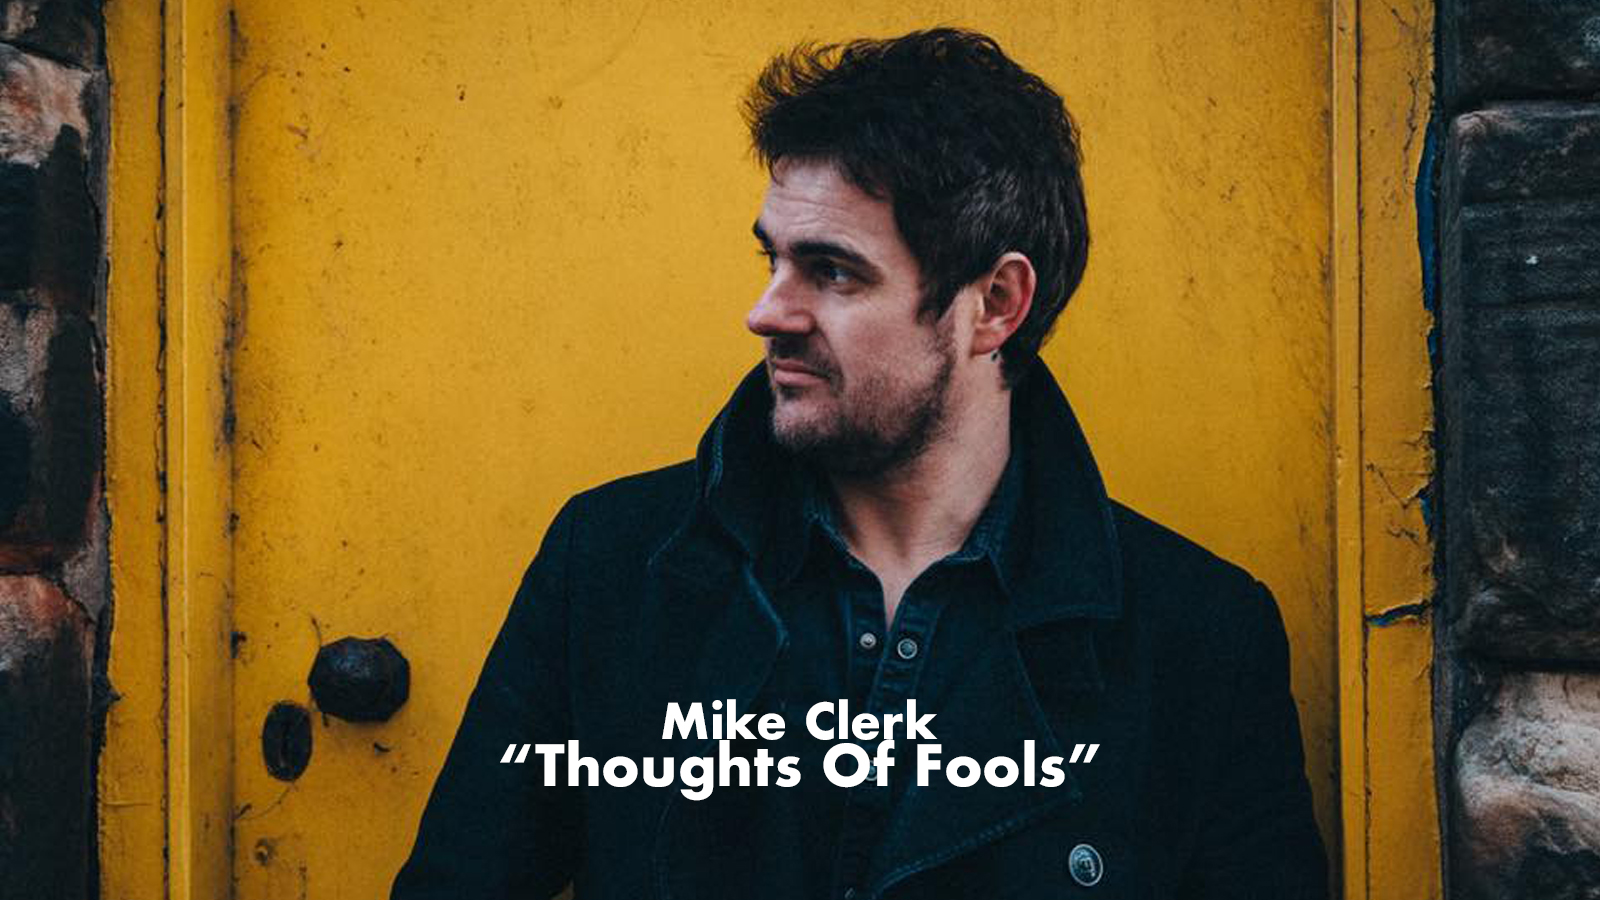 Mike Clerk - Thoughts Of Fools